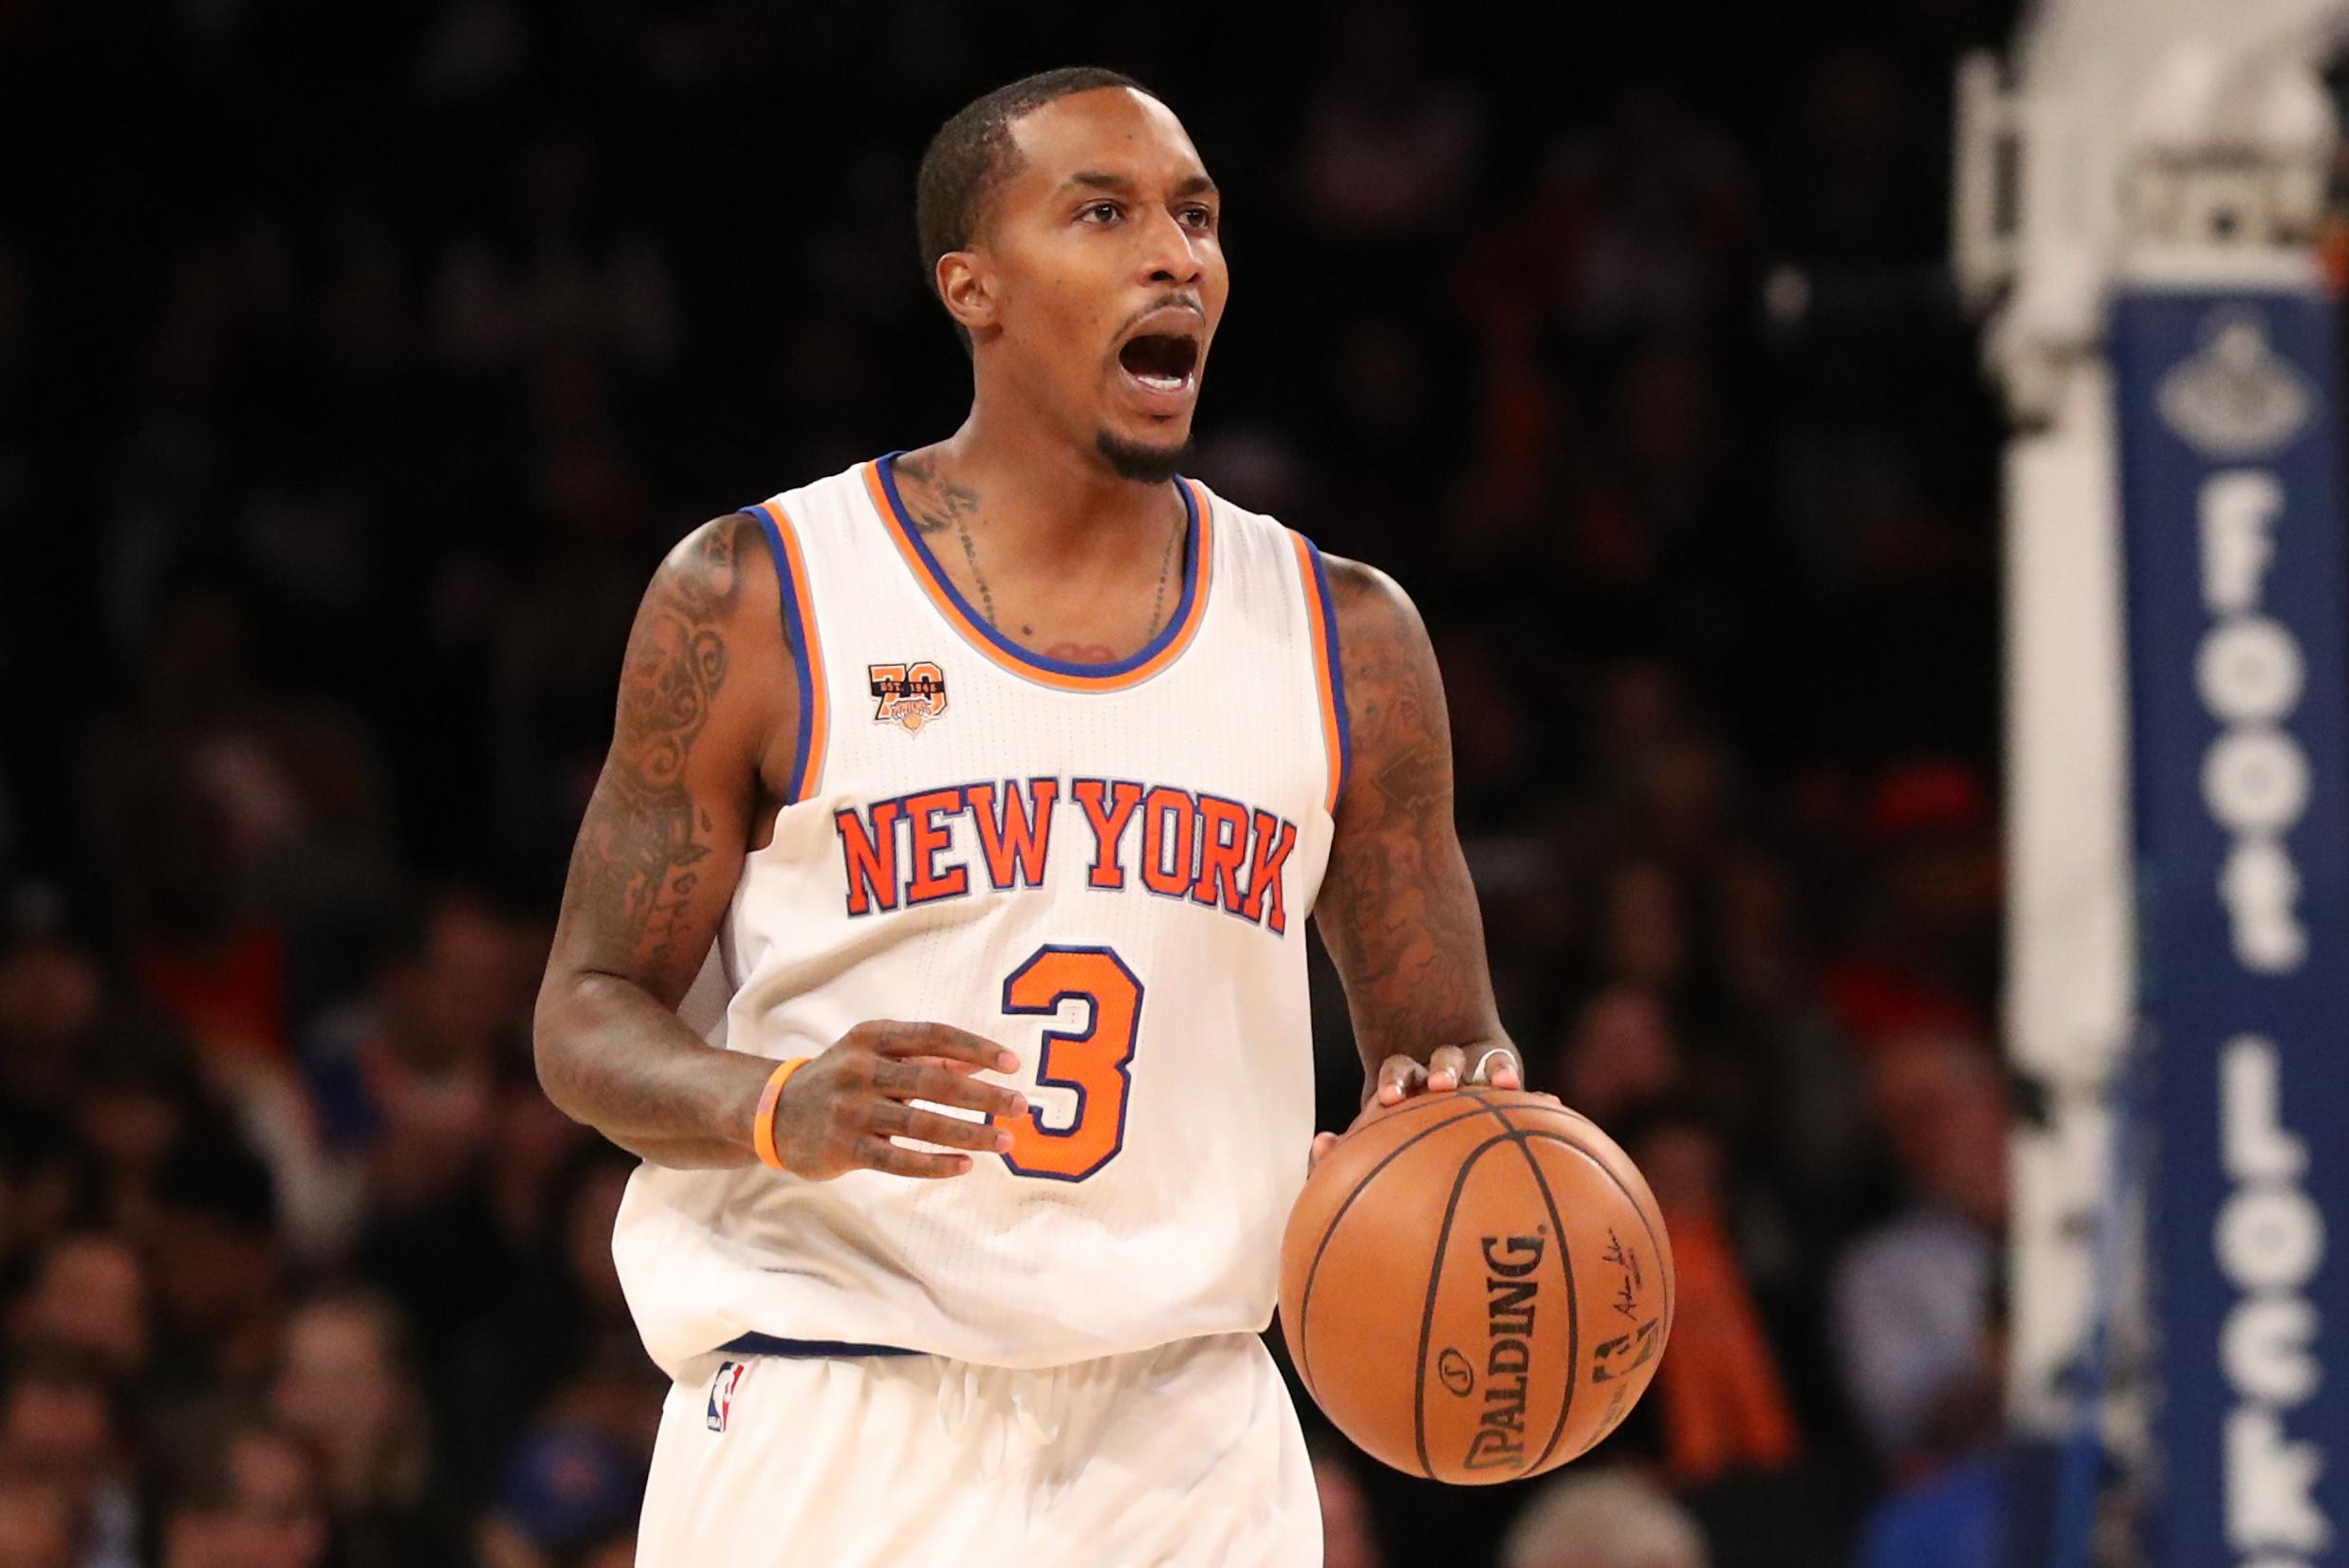 New York Knicks' Brandon Jennings Doesn't Like Helping Up Opponents